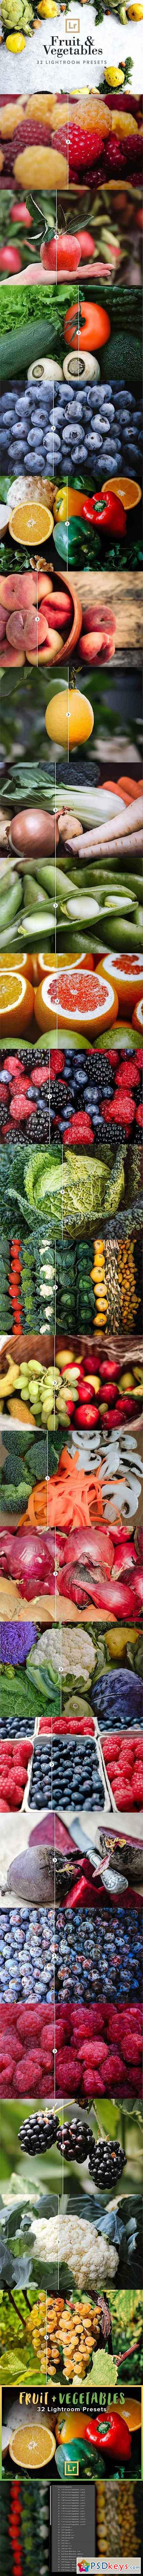 Fruit & Vegetables Lightroom Presets 2532992